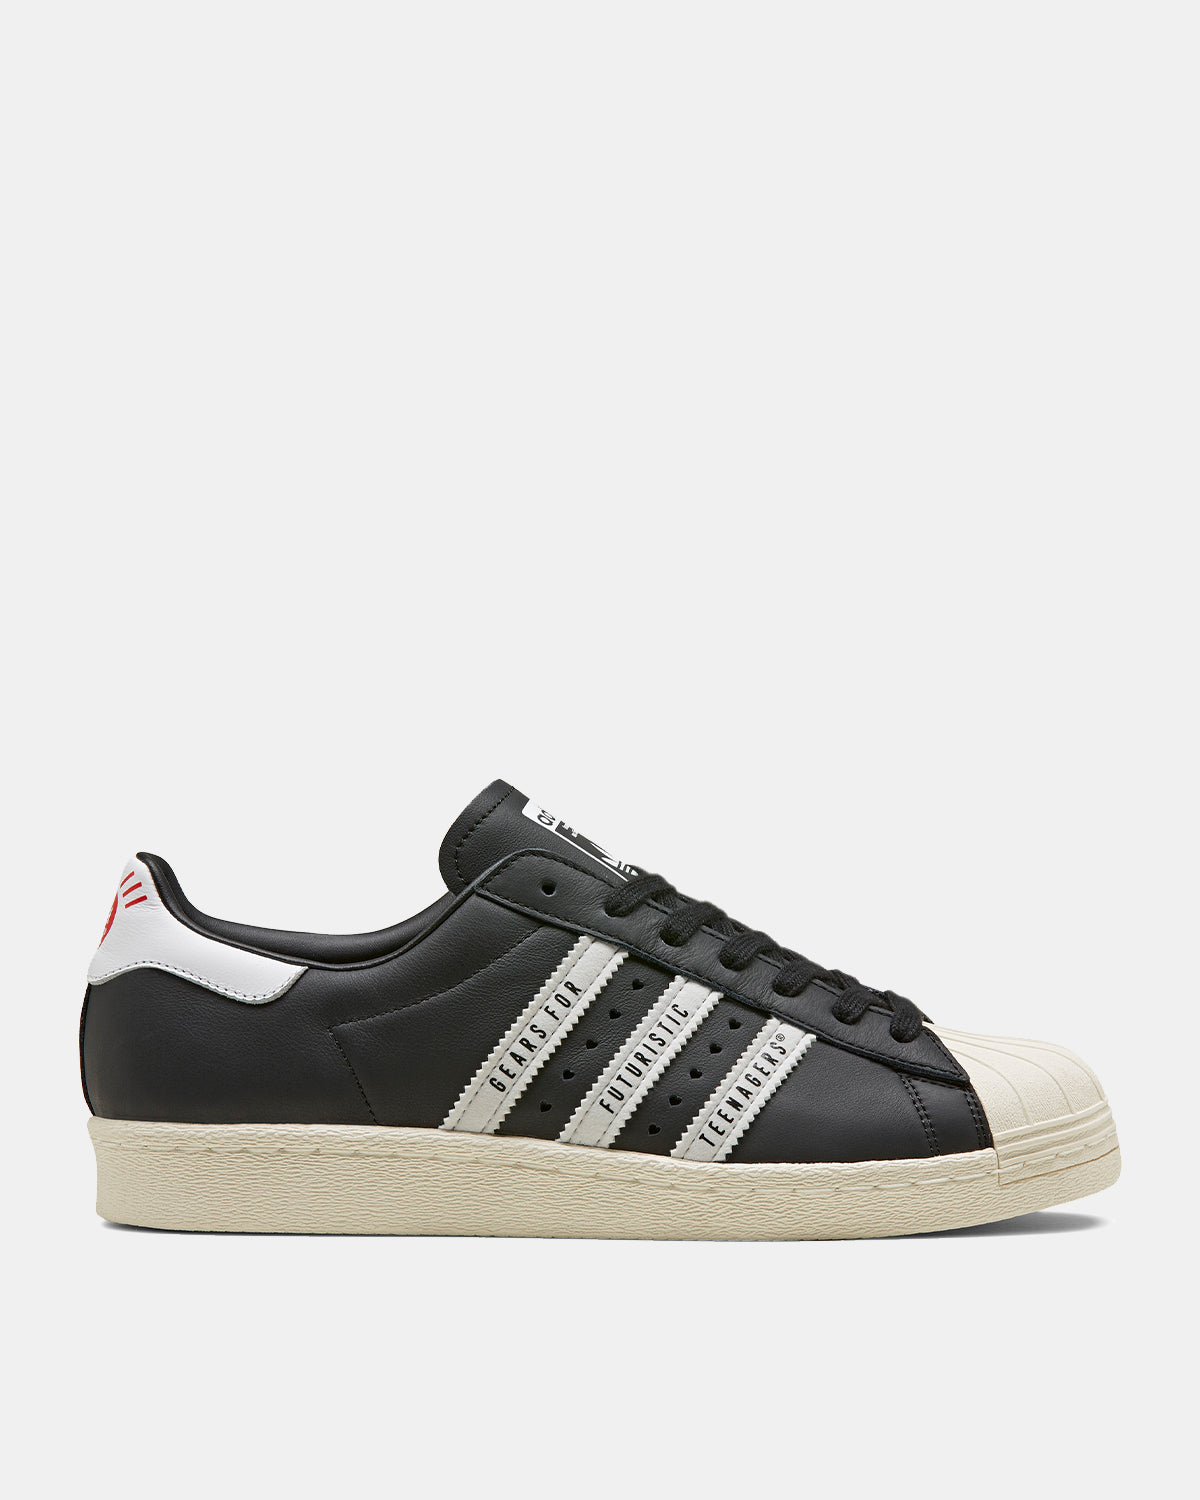 adidas Human Made Superstar 80 Core (Blk| Wht)